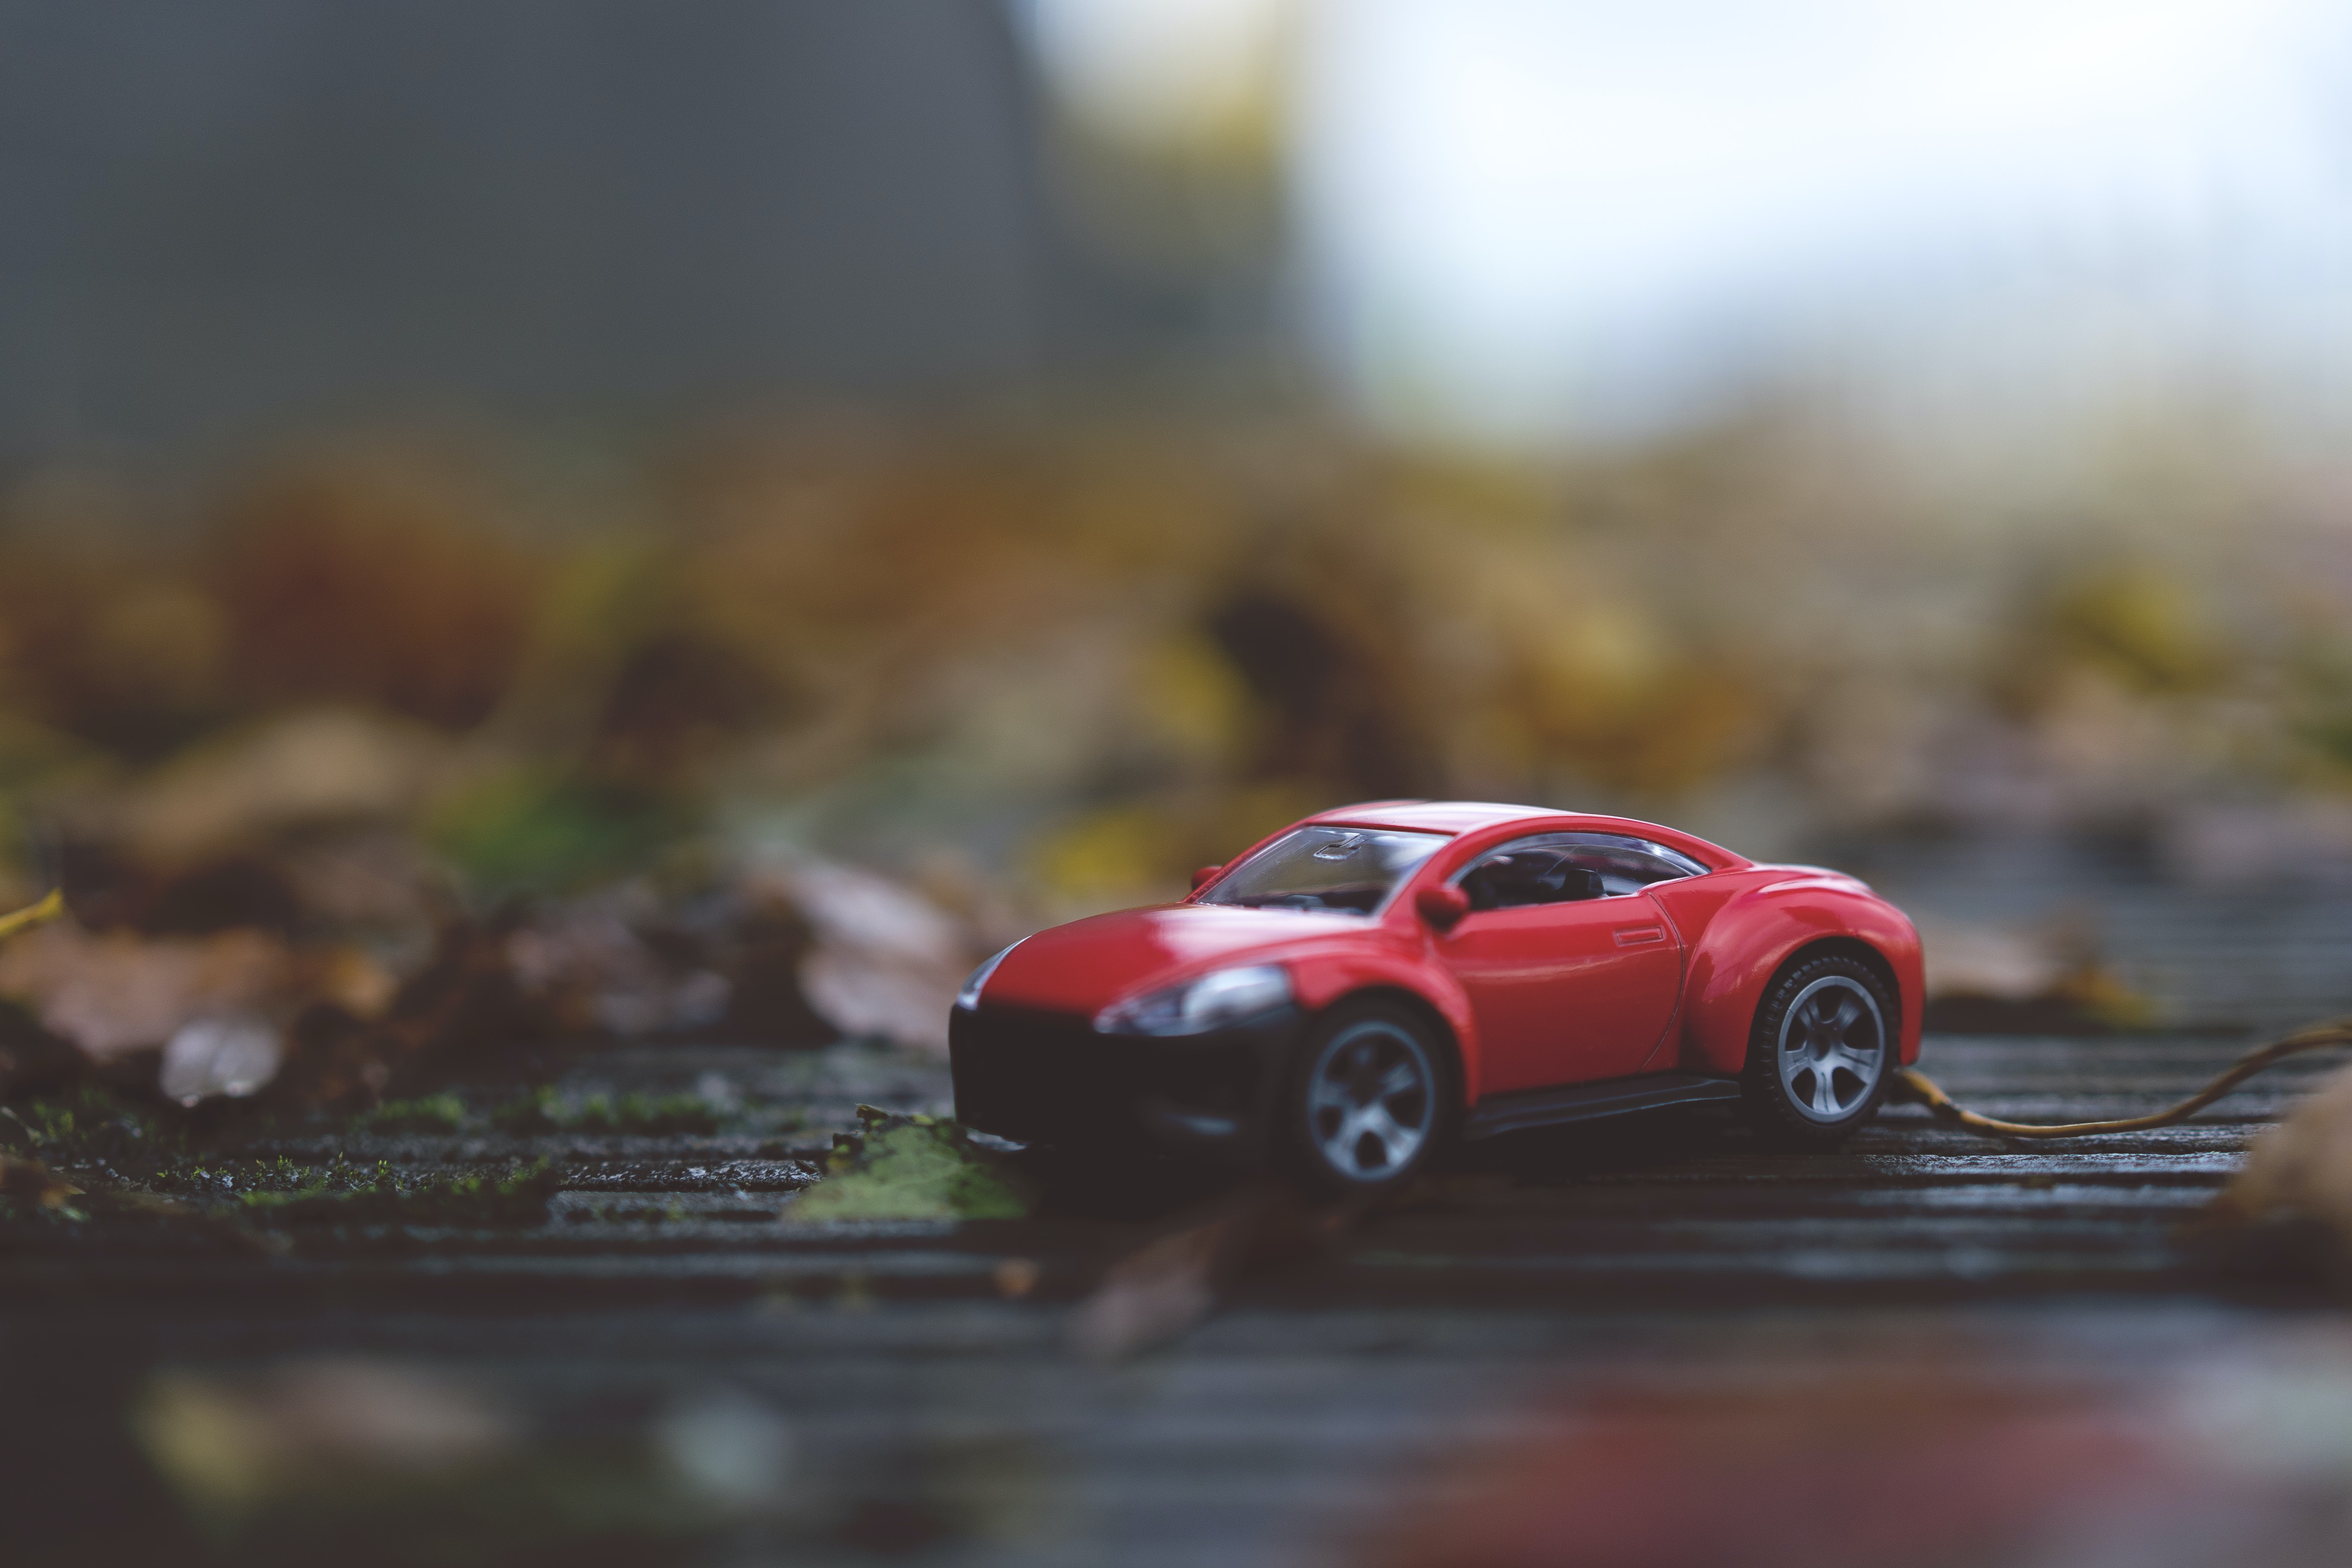 selective focus photography of red die cast toy car